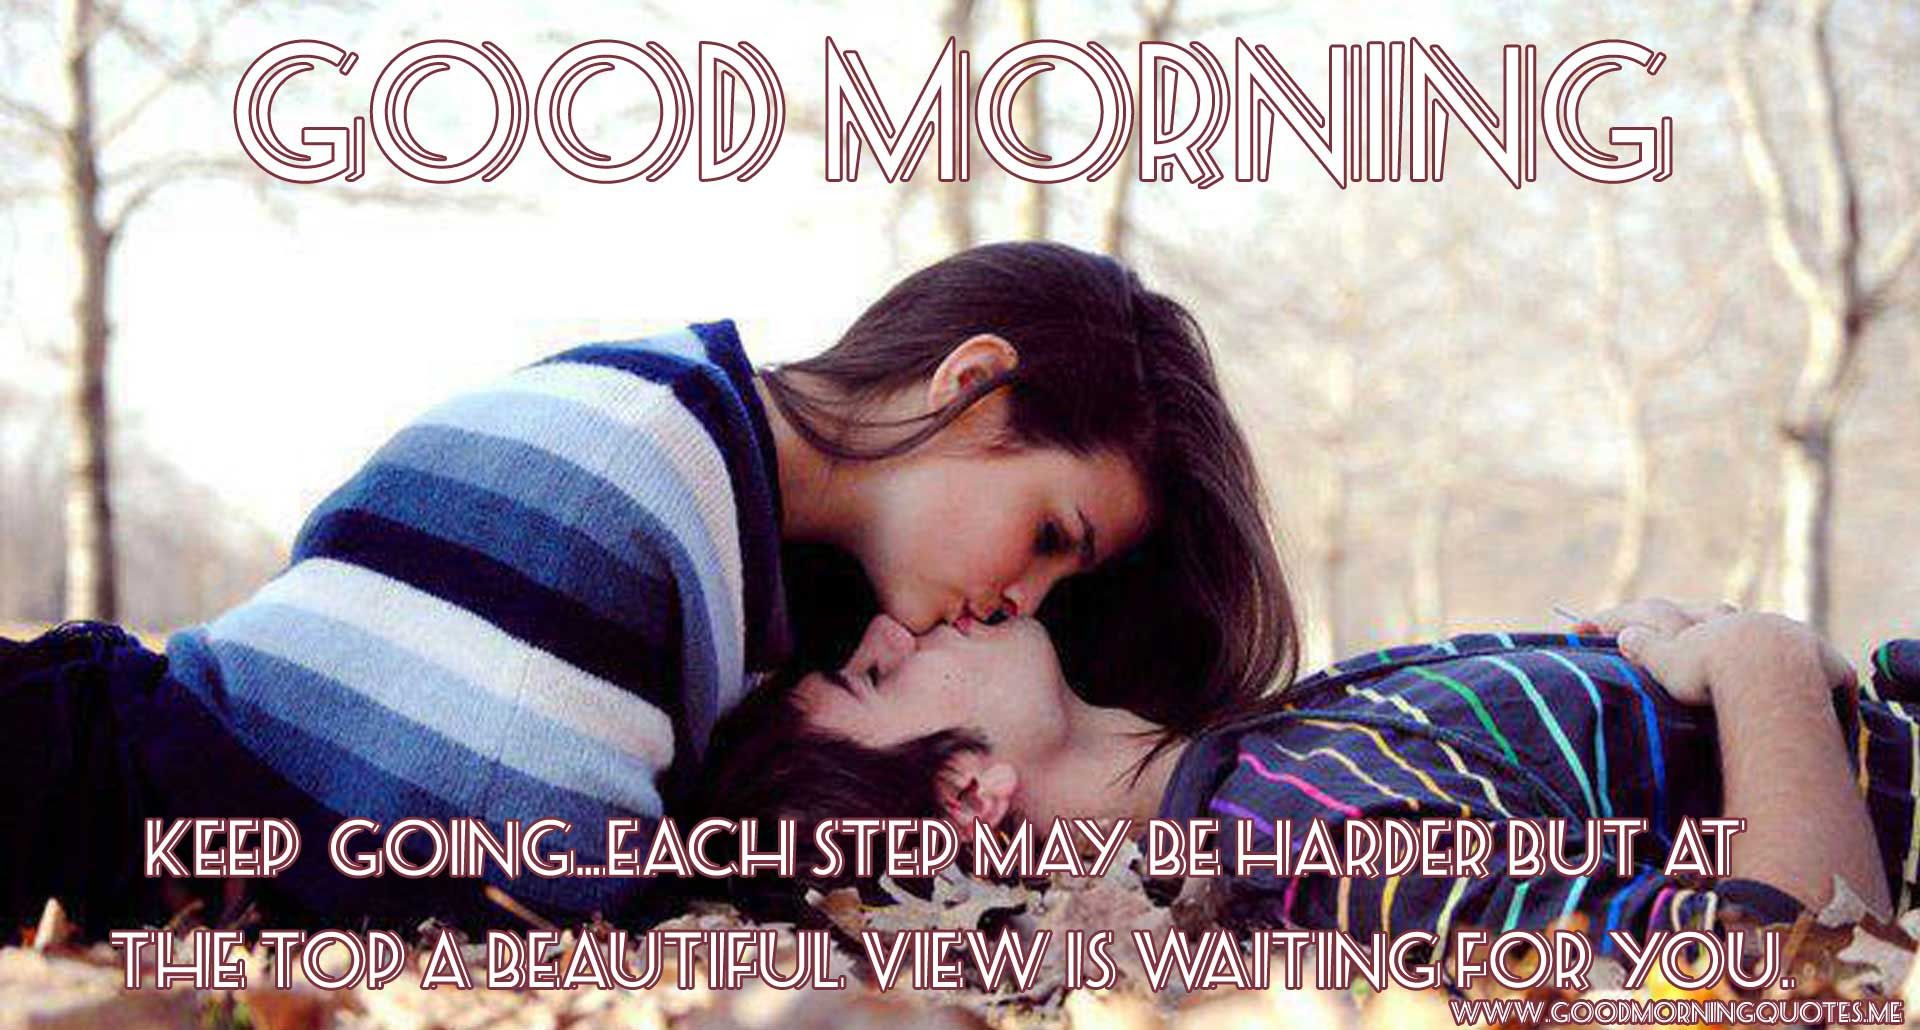 The most beautiful collection of good morning love couple images with quotes send these love